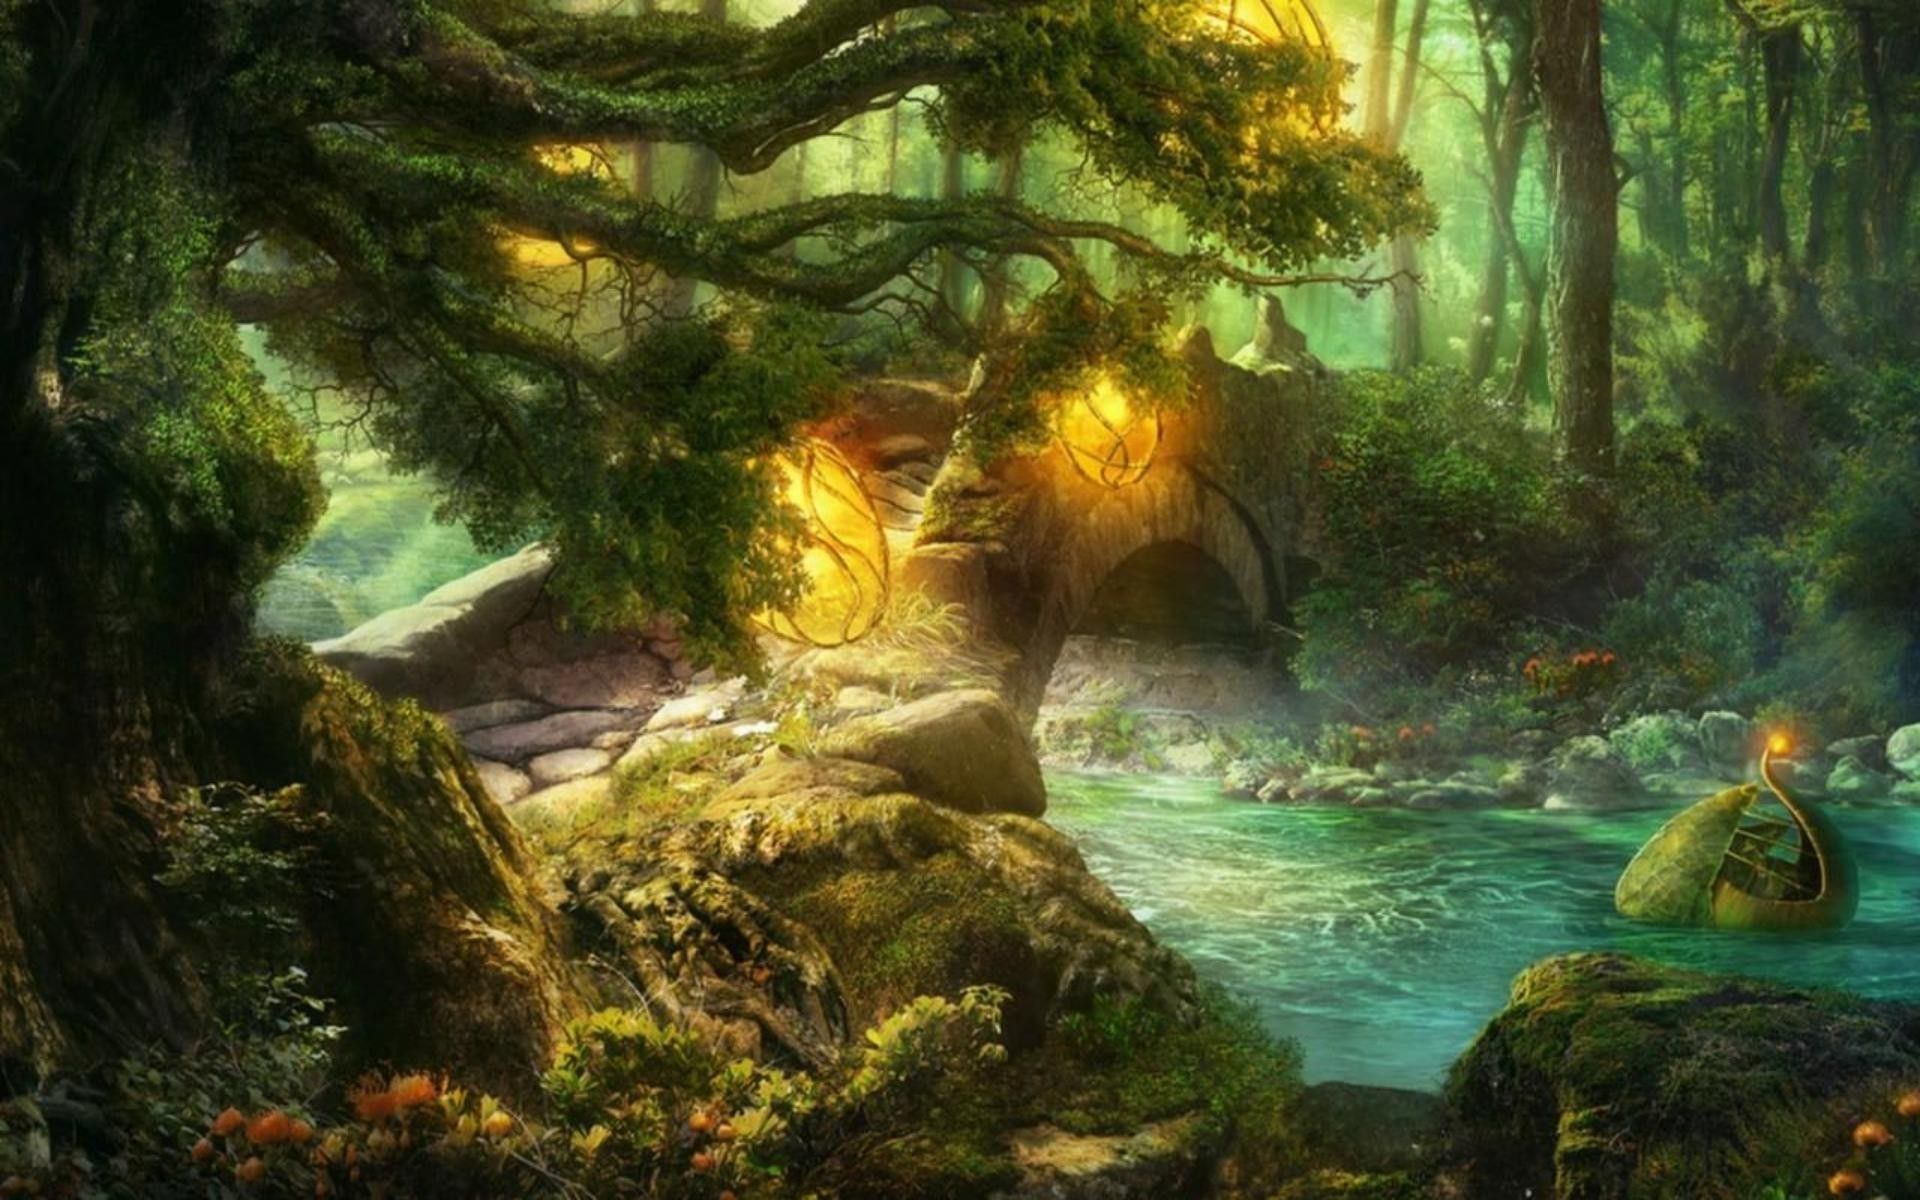 Res: 1920x1200, Stone bridge in fairytale forest wallpaper 5332